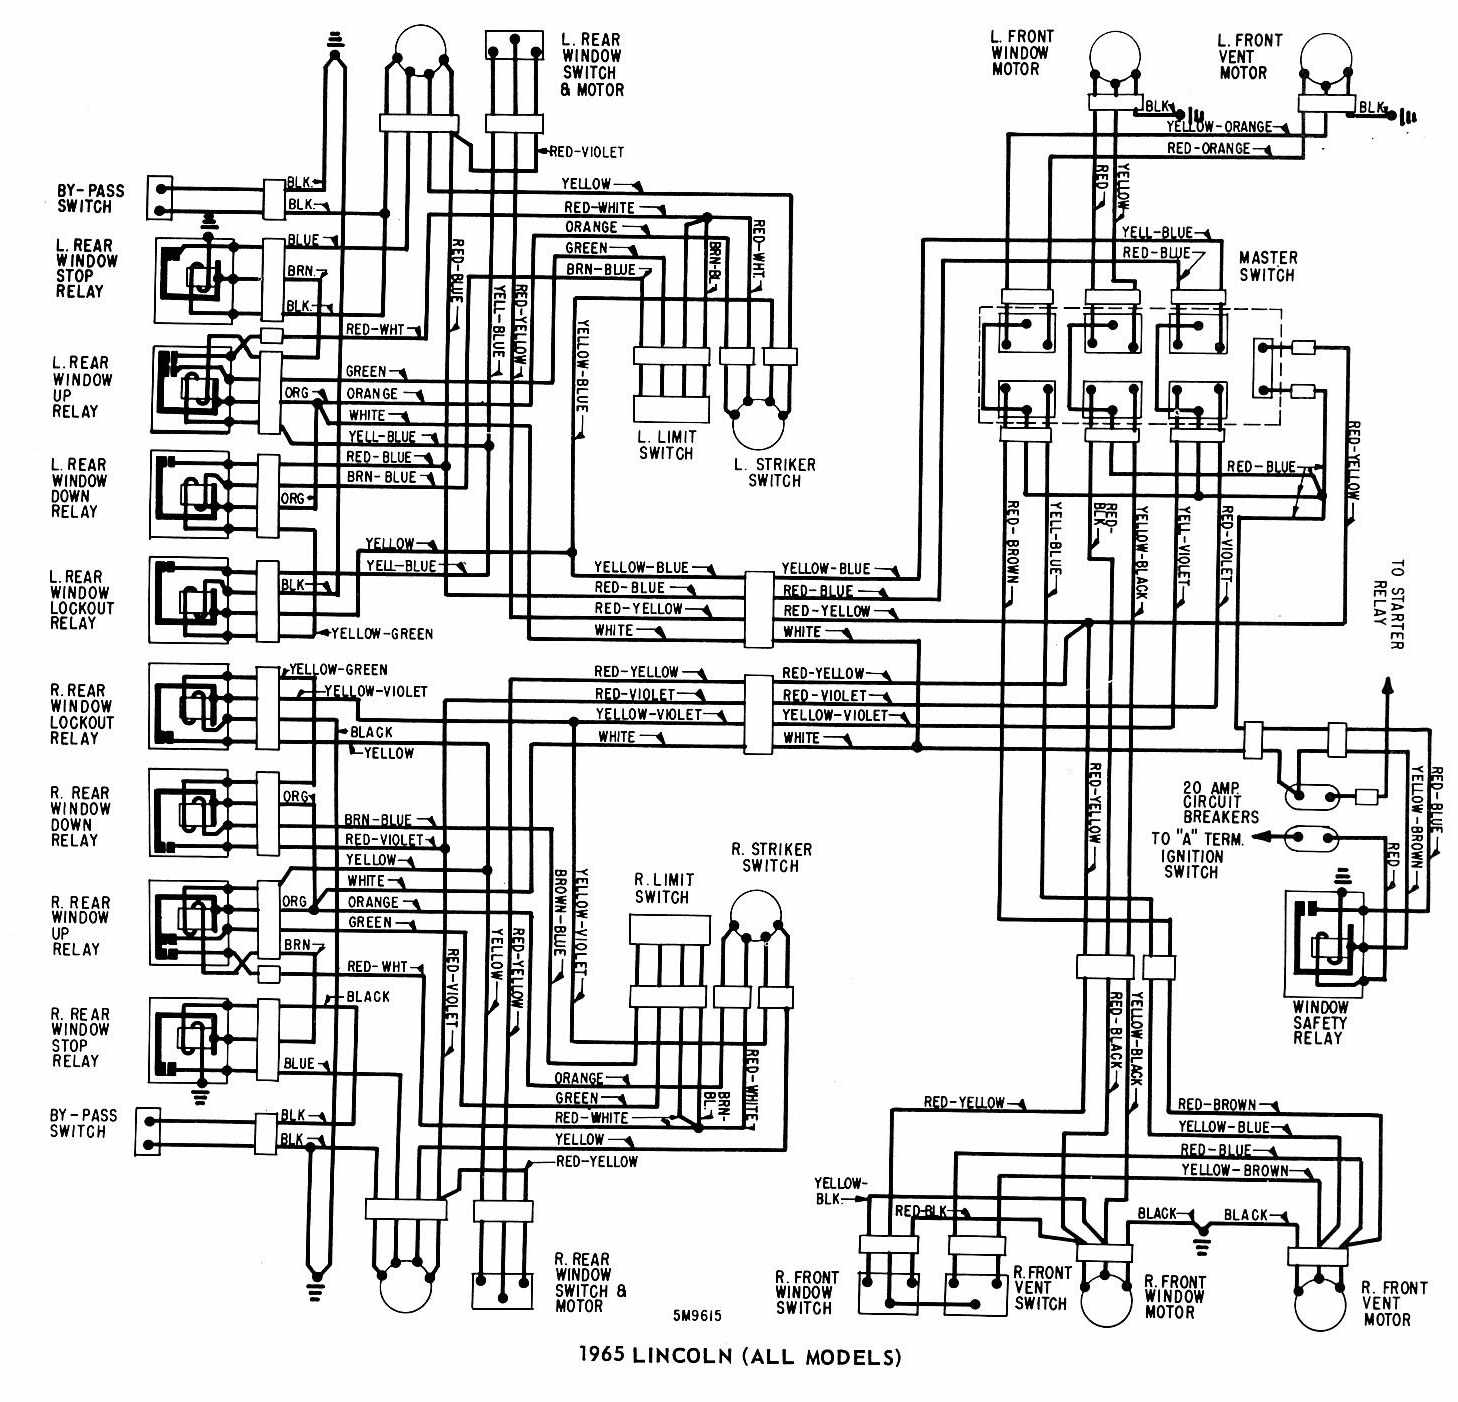 hight resolution of 1965 lincoln continental wiring diagram wiring diagram third level lincoln mark iii wiring diagram 1970 lincoln